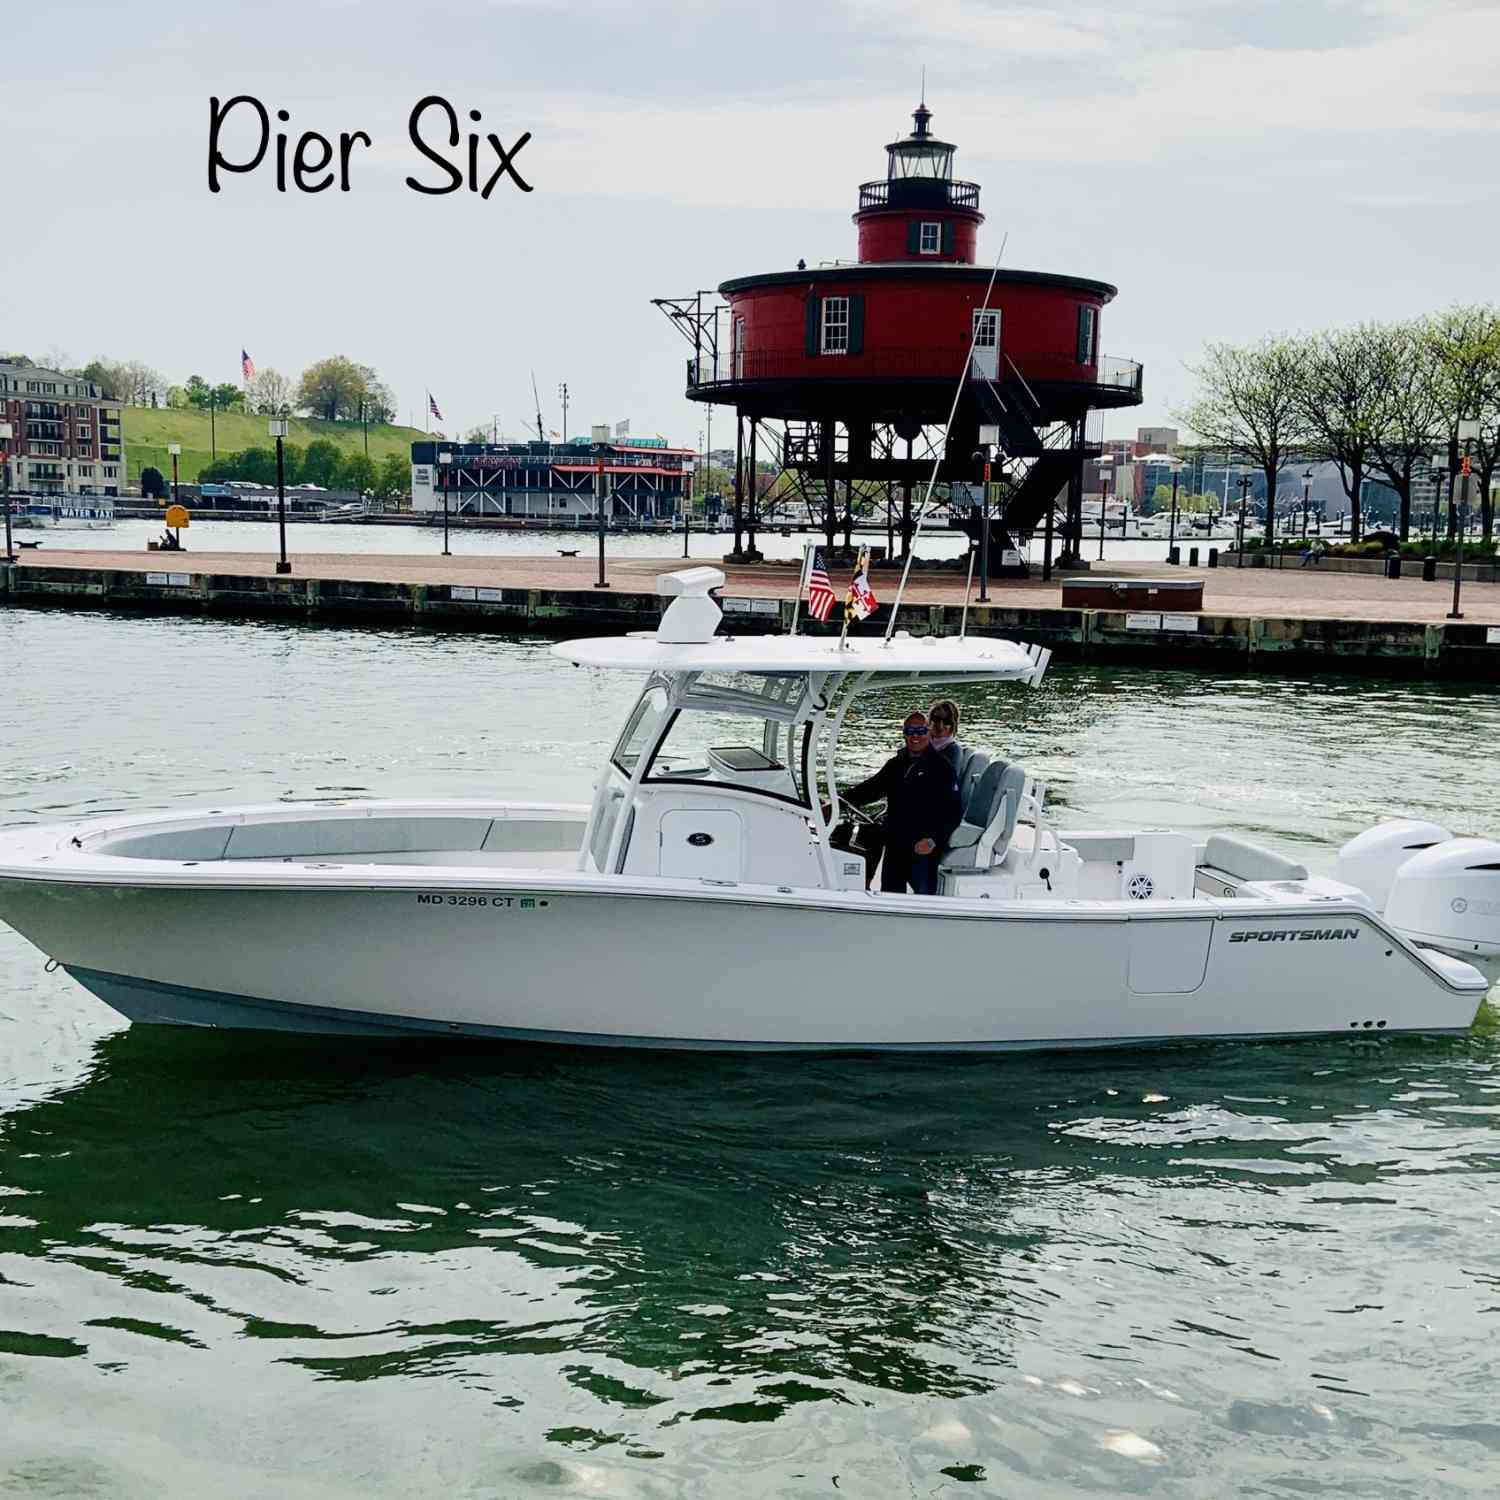 Title: Pier Six Inner Harbor - On board their Sportsman Open 312 Center Console - Location: Baltimore Maryland. Participating in the Photo Contest #SportsmanMay2019